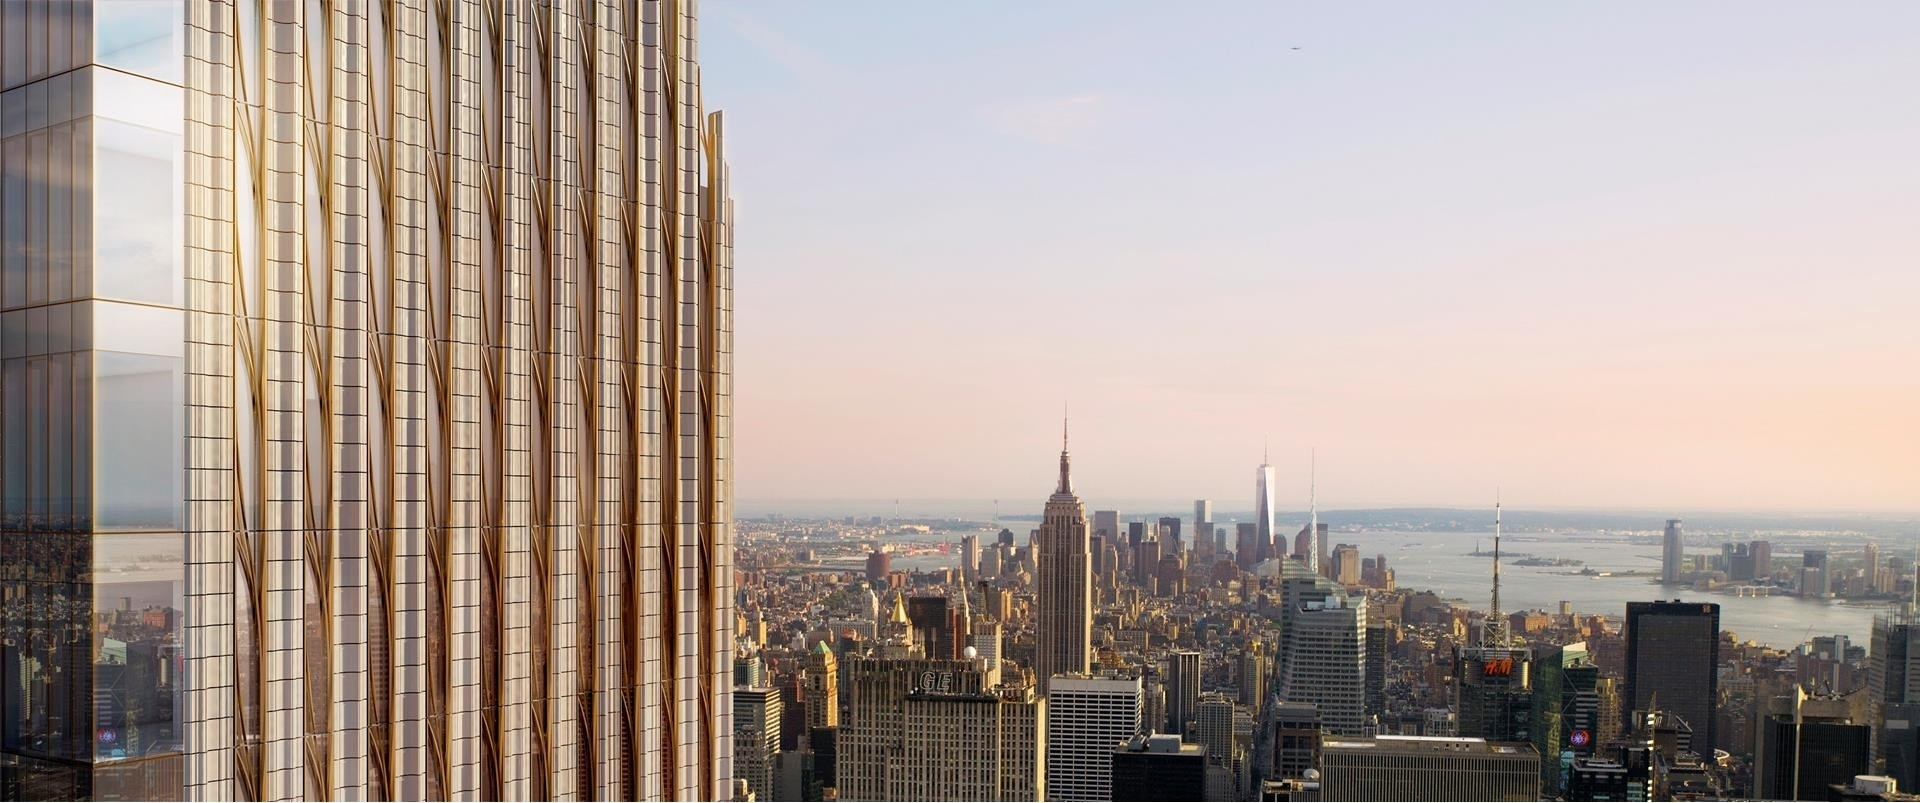 Property at 111 West 57th St, 68 Midtown Manhattan, New York, NY 10019